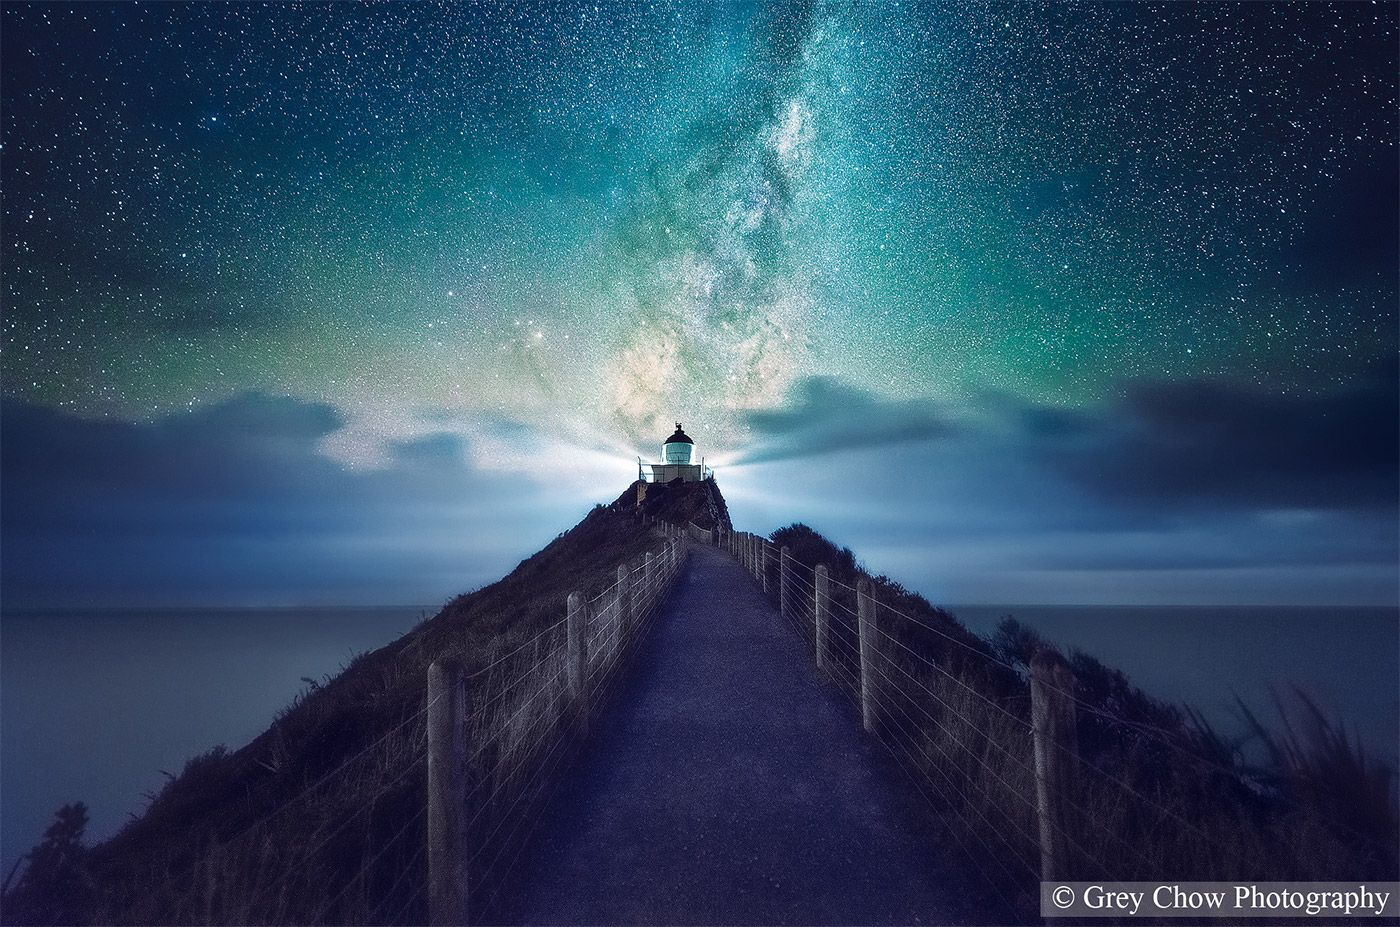 Starlight Breathtaking Photos By Grey Chow Inspiration Grid